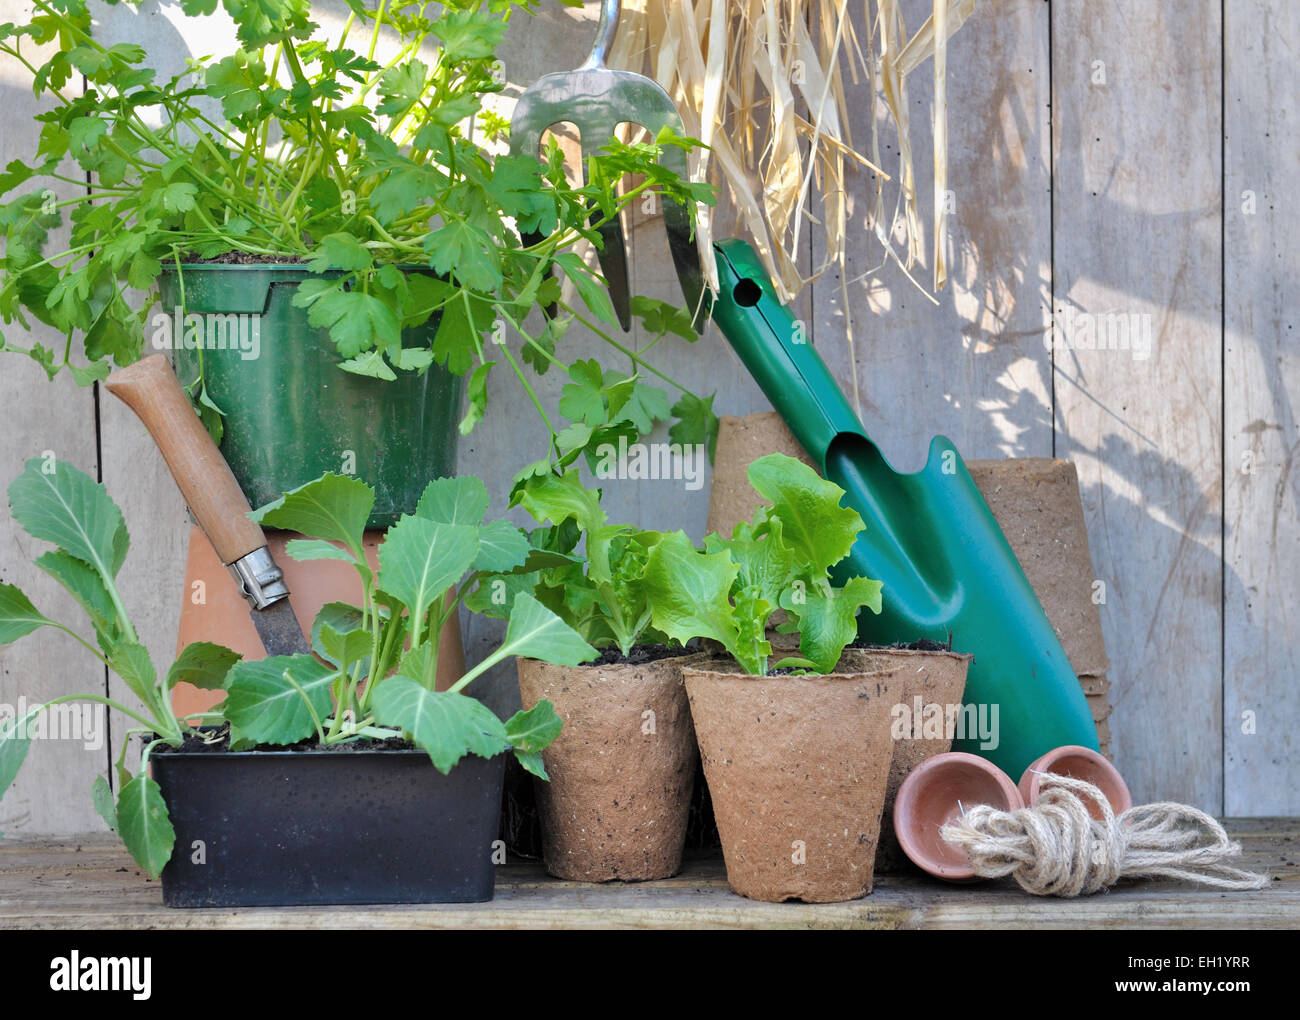 Plants And Gardening Accessories With Tools On Wooden Background   Stock  Image